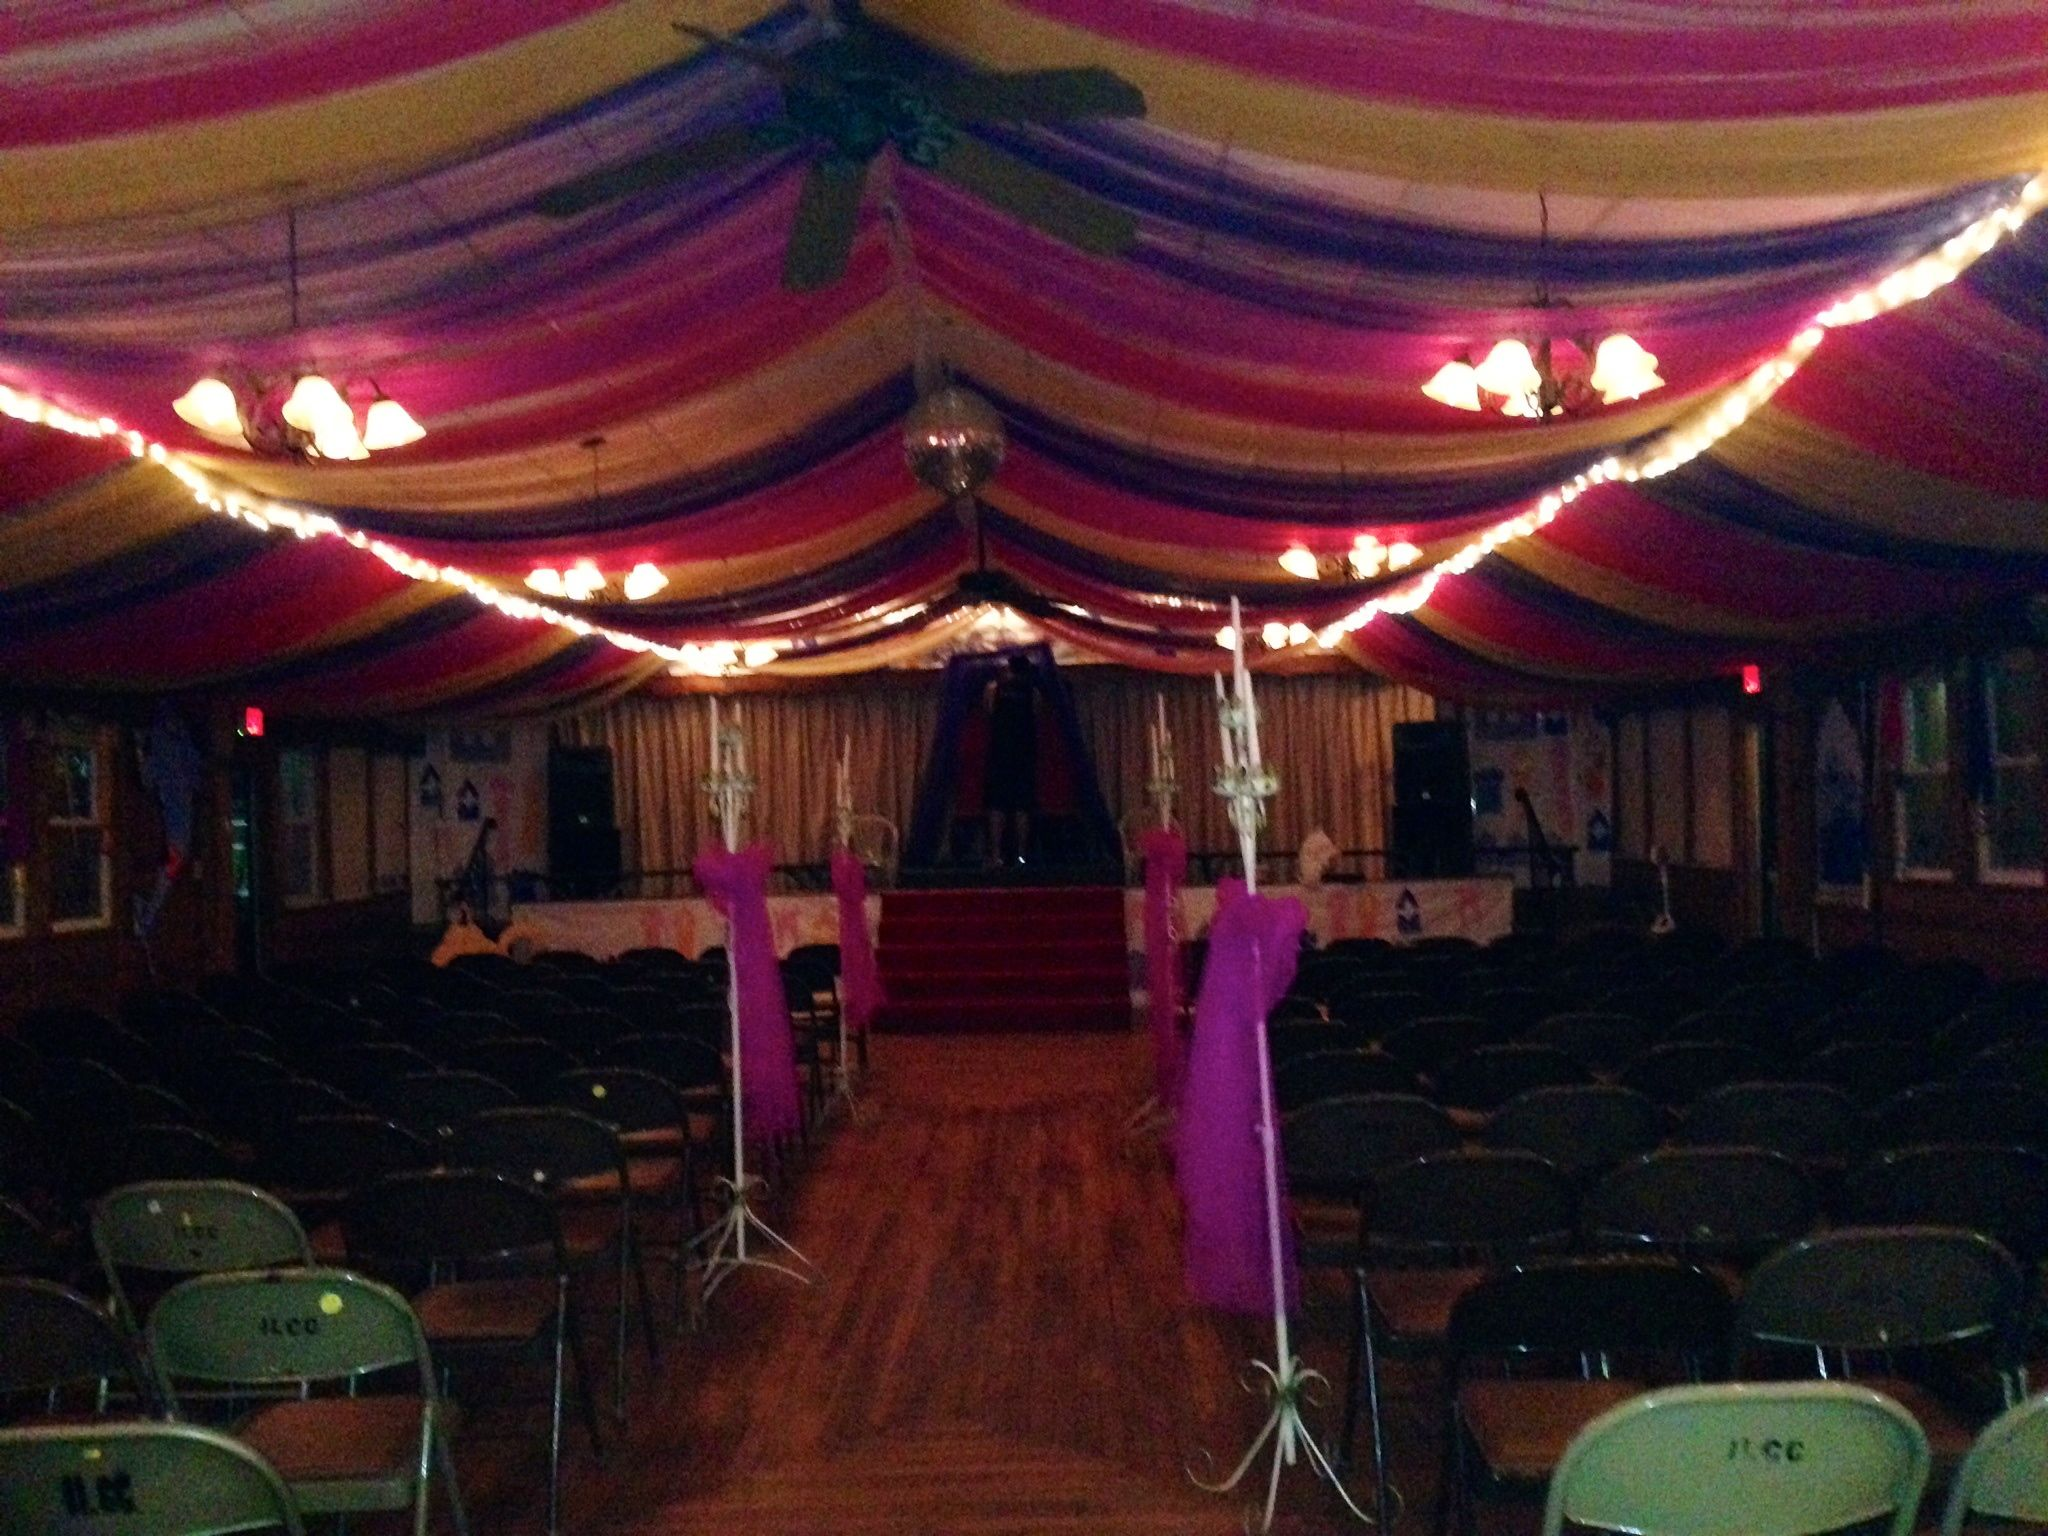 us of events range wide quickly conferences room how vast for a pipes dressing drapes uses allows drape pipe kent our temporary stock to ceiling l install hang hire live including